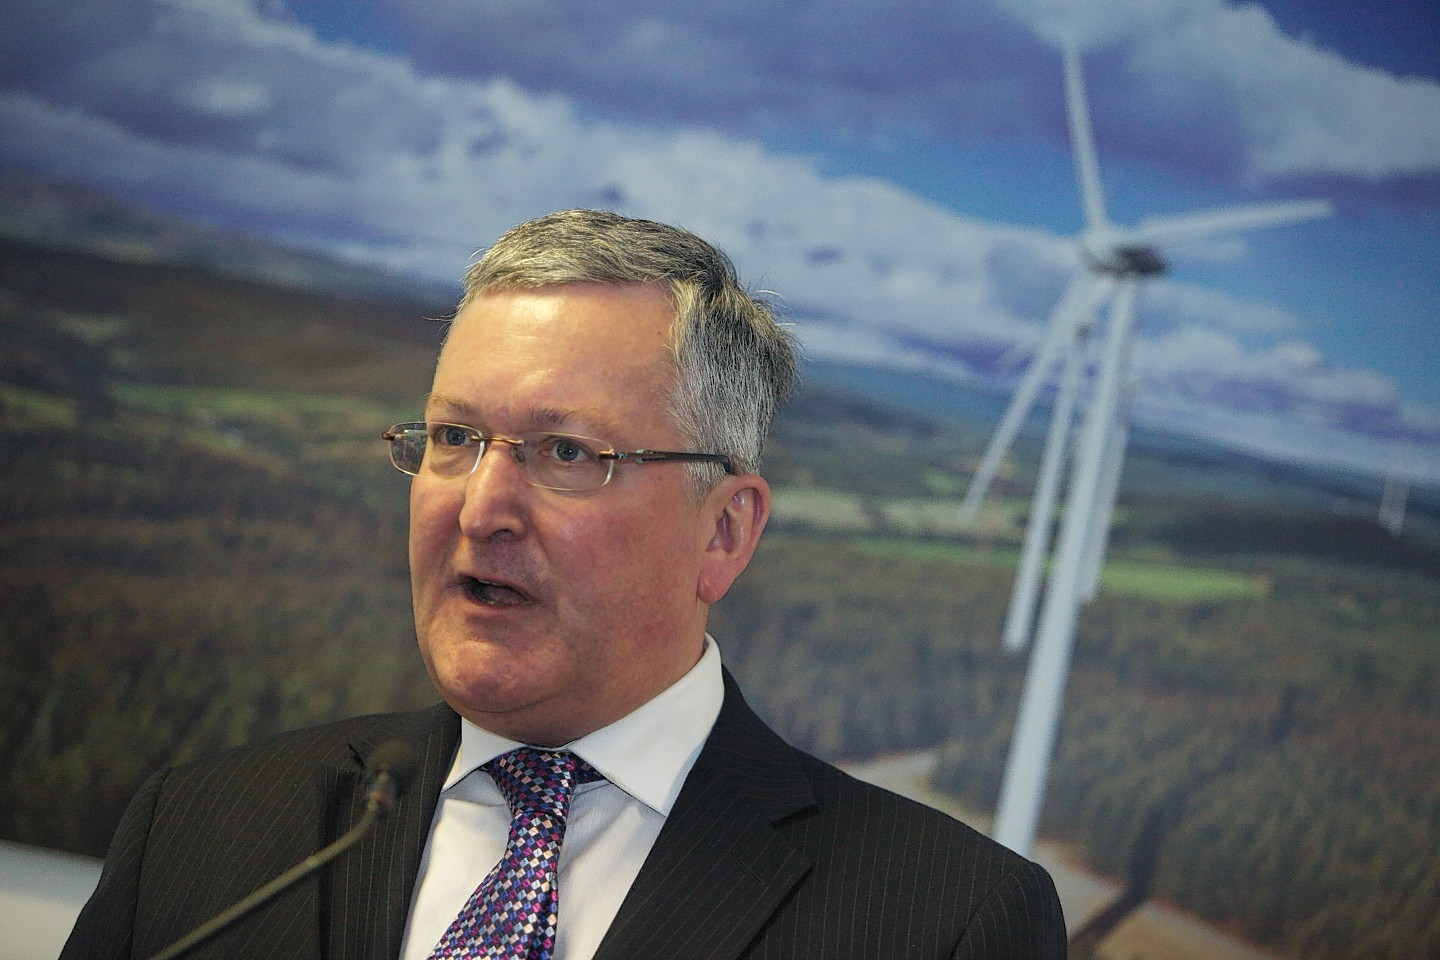 Scottish Energy Minister Fergus Ewing